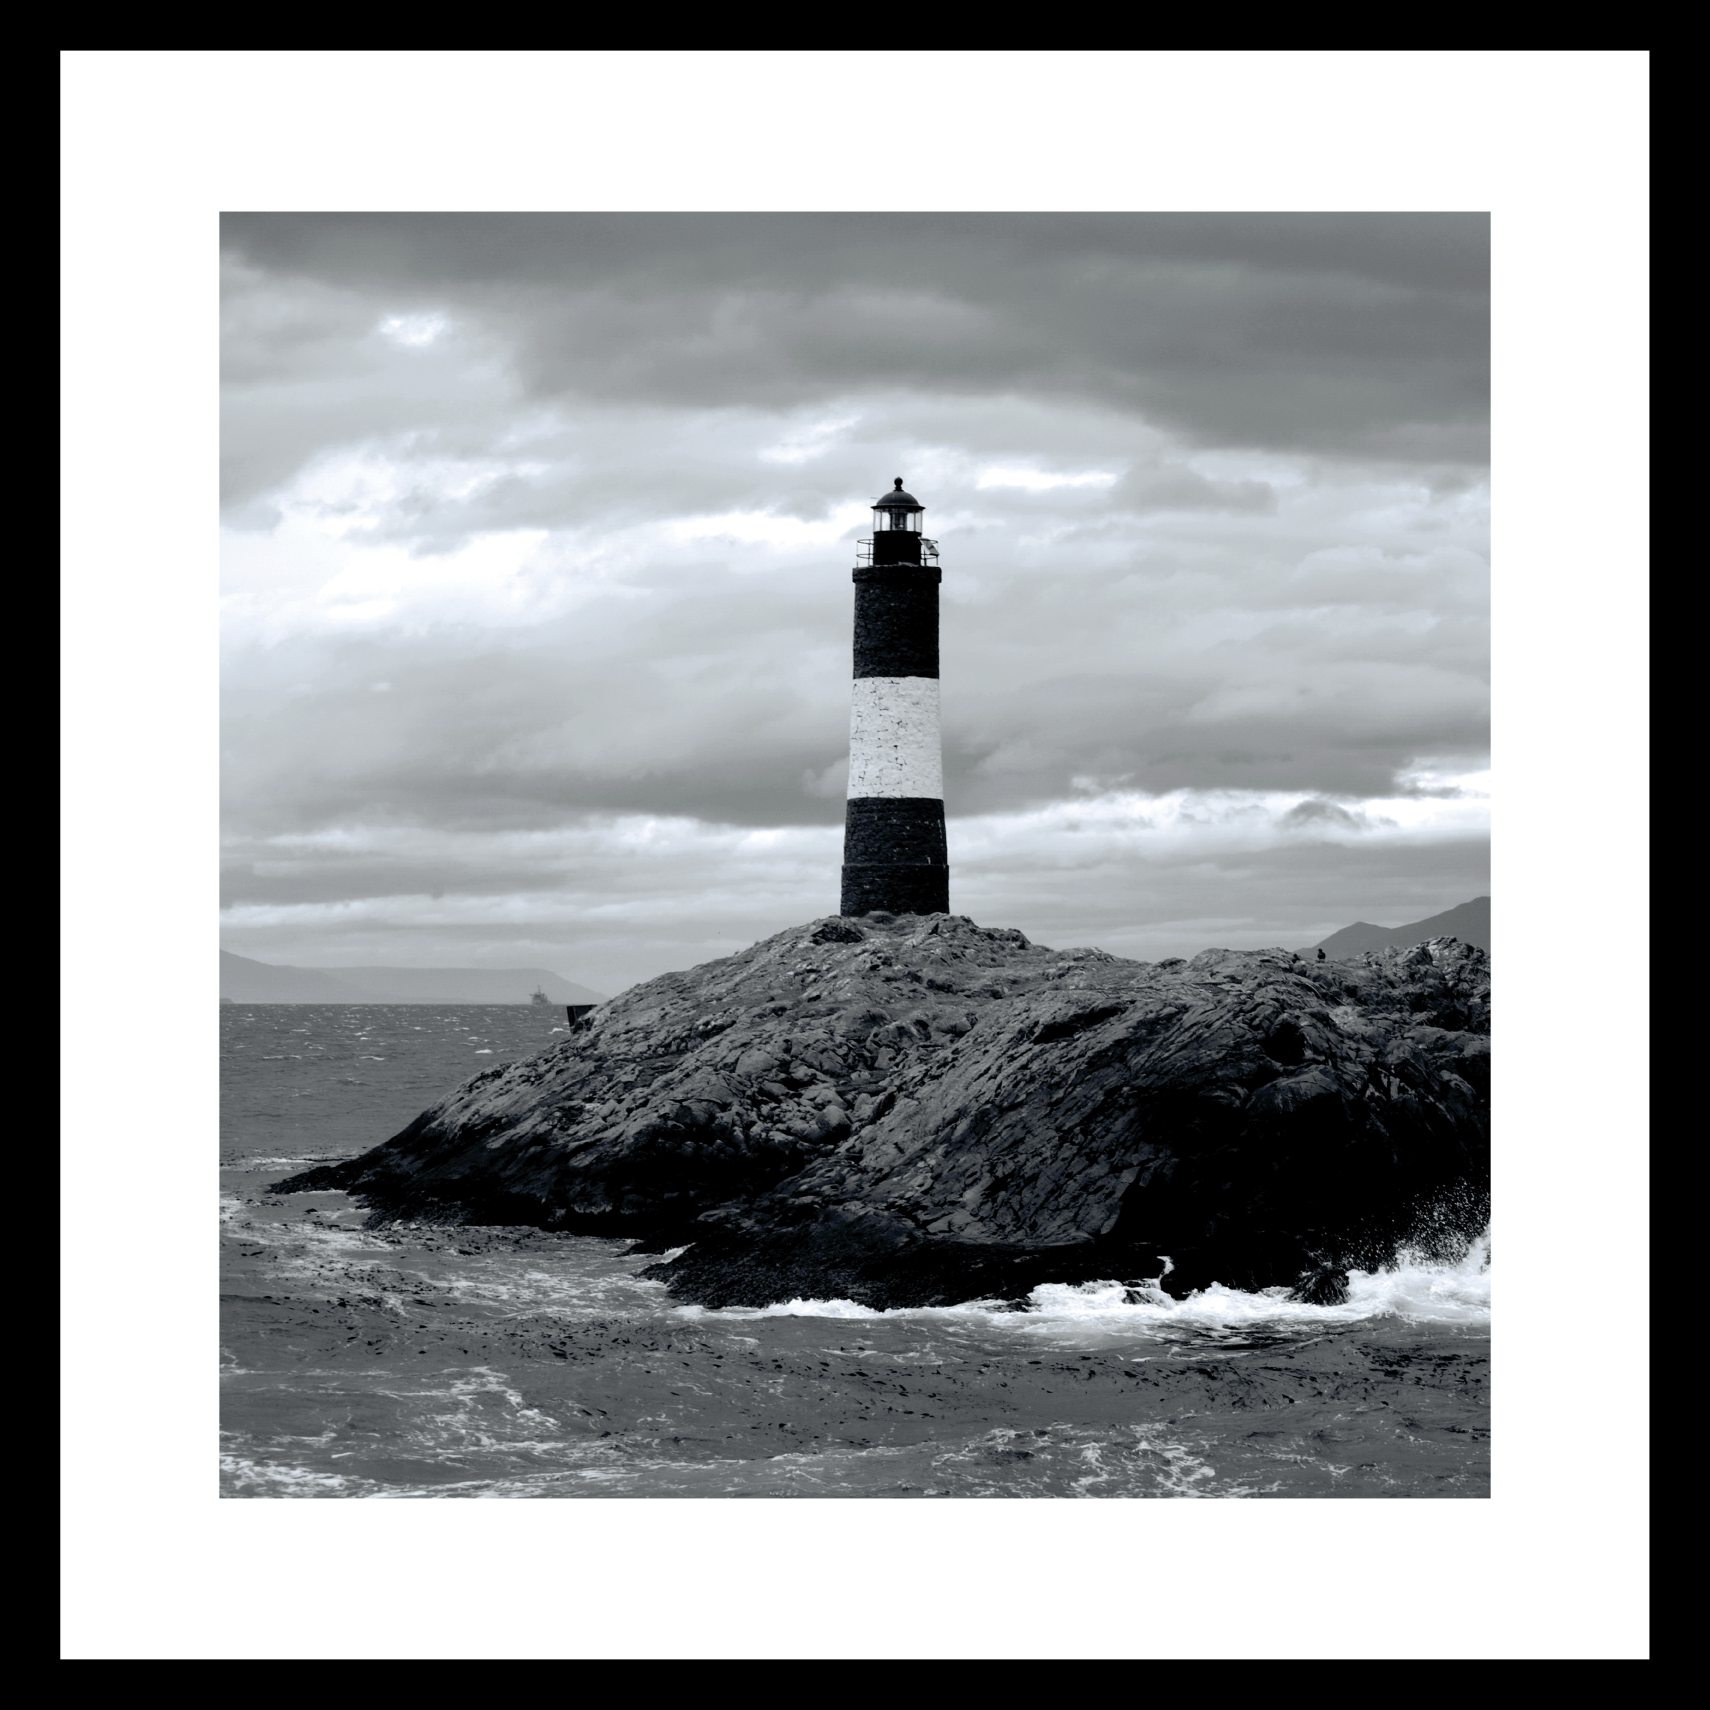 ART GALLERY Plakat 40 x 40 x 1,5 cm - Lighthouse I og ramme i 15 mm sort fyrretræ